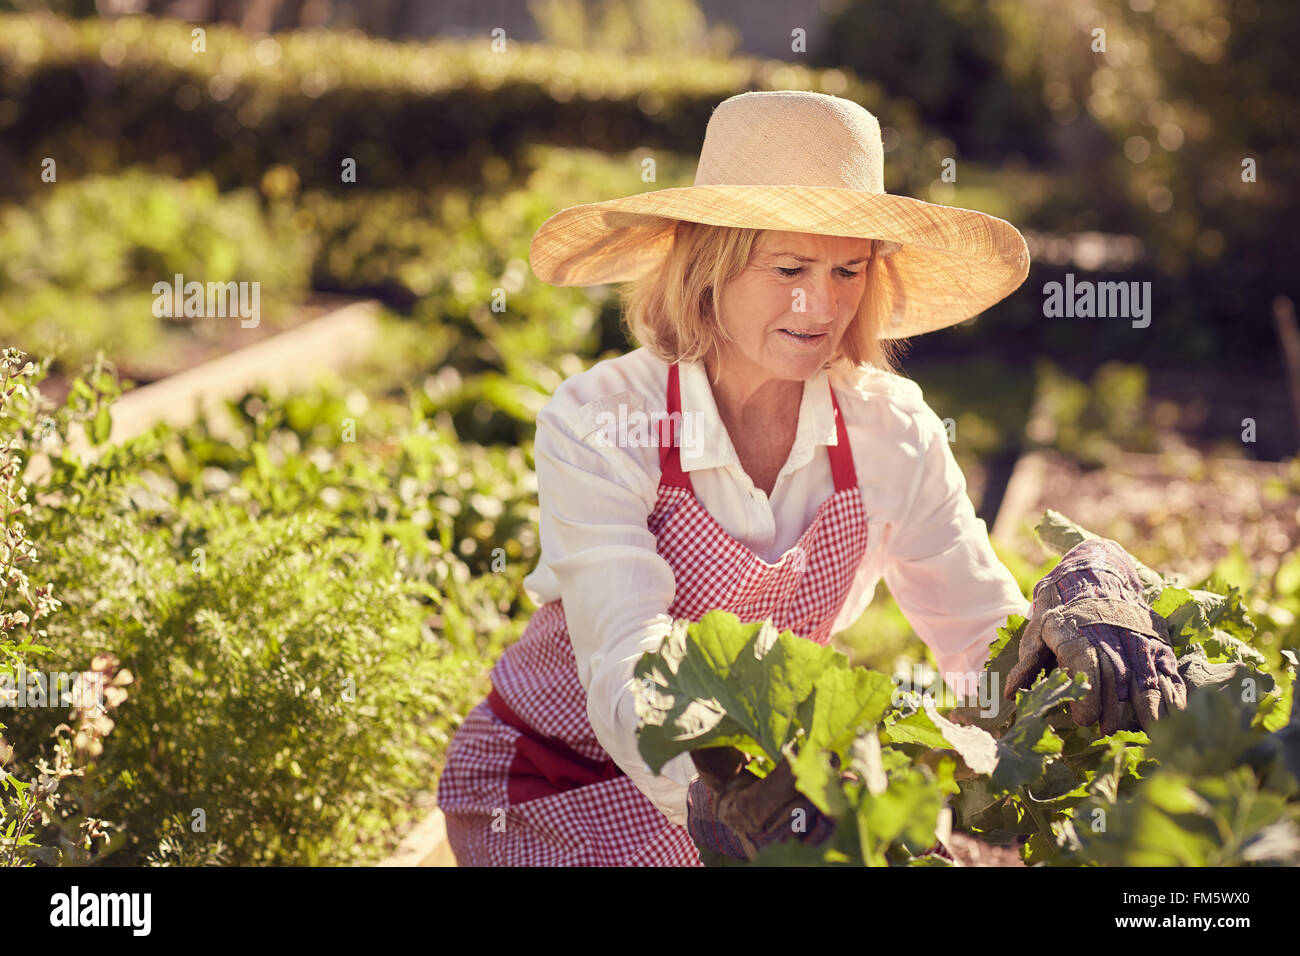 343a56095f47d Senior woman wearing hat and apron